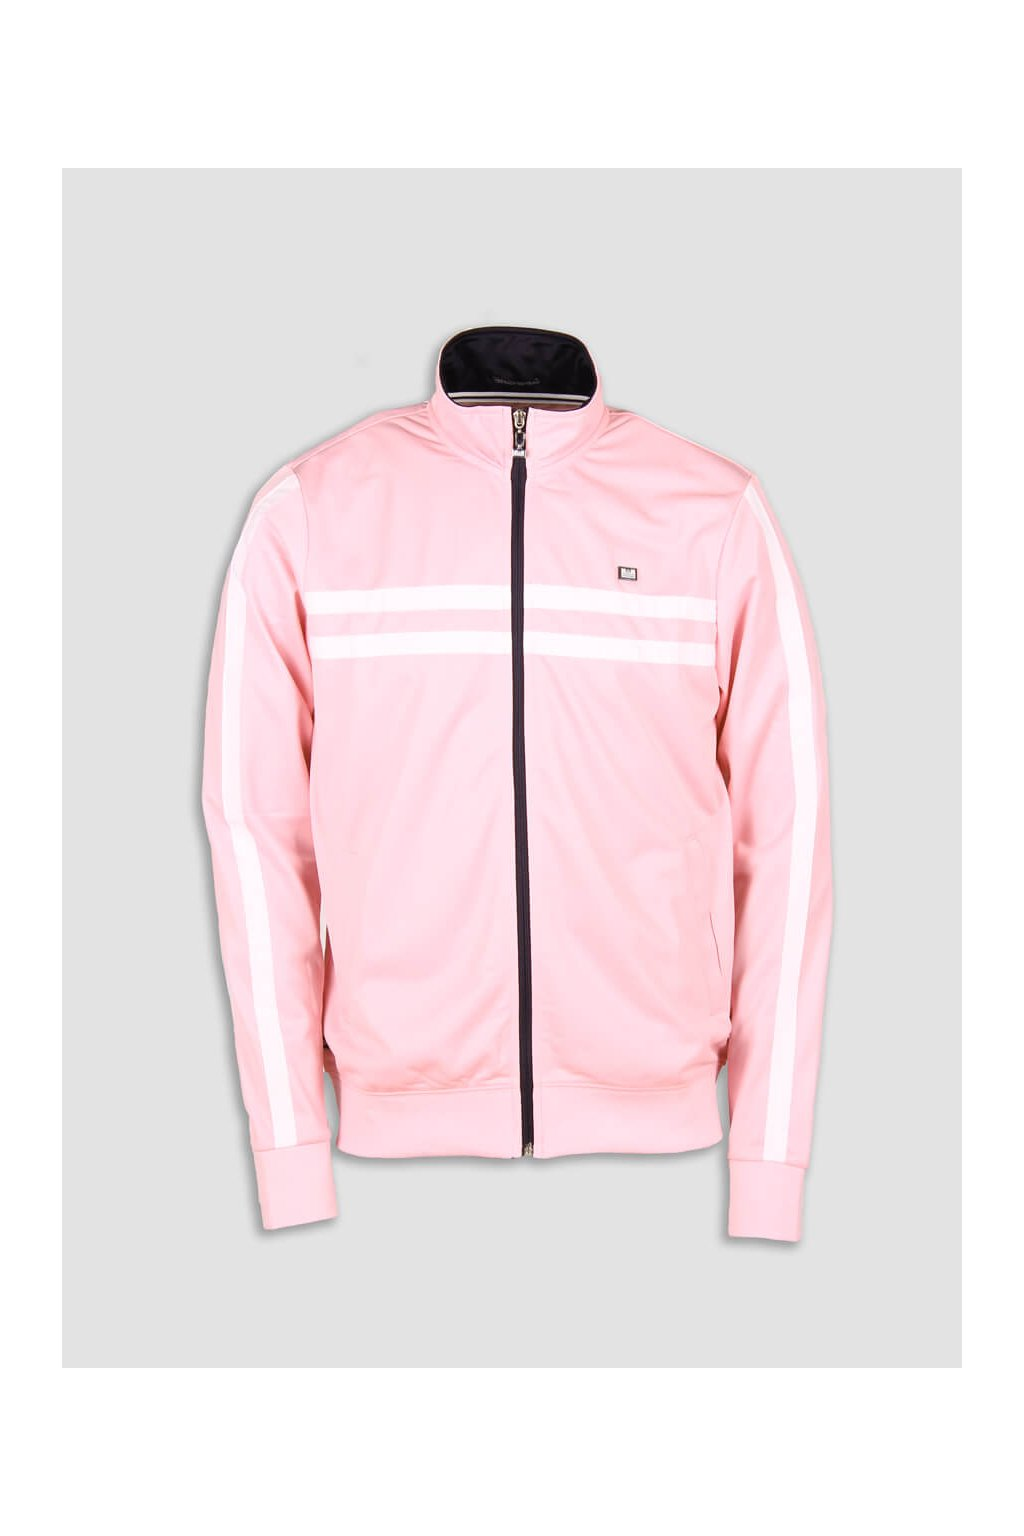 SPSS18 02 KESEY SPORT TRACK TOP ROSE